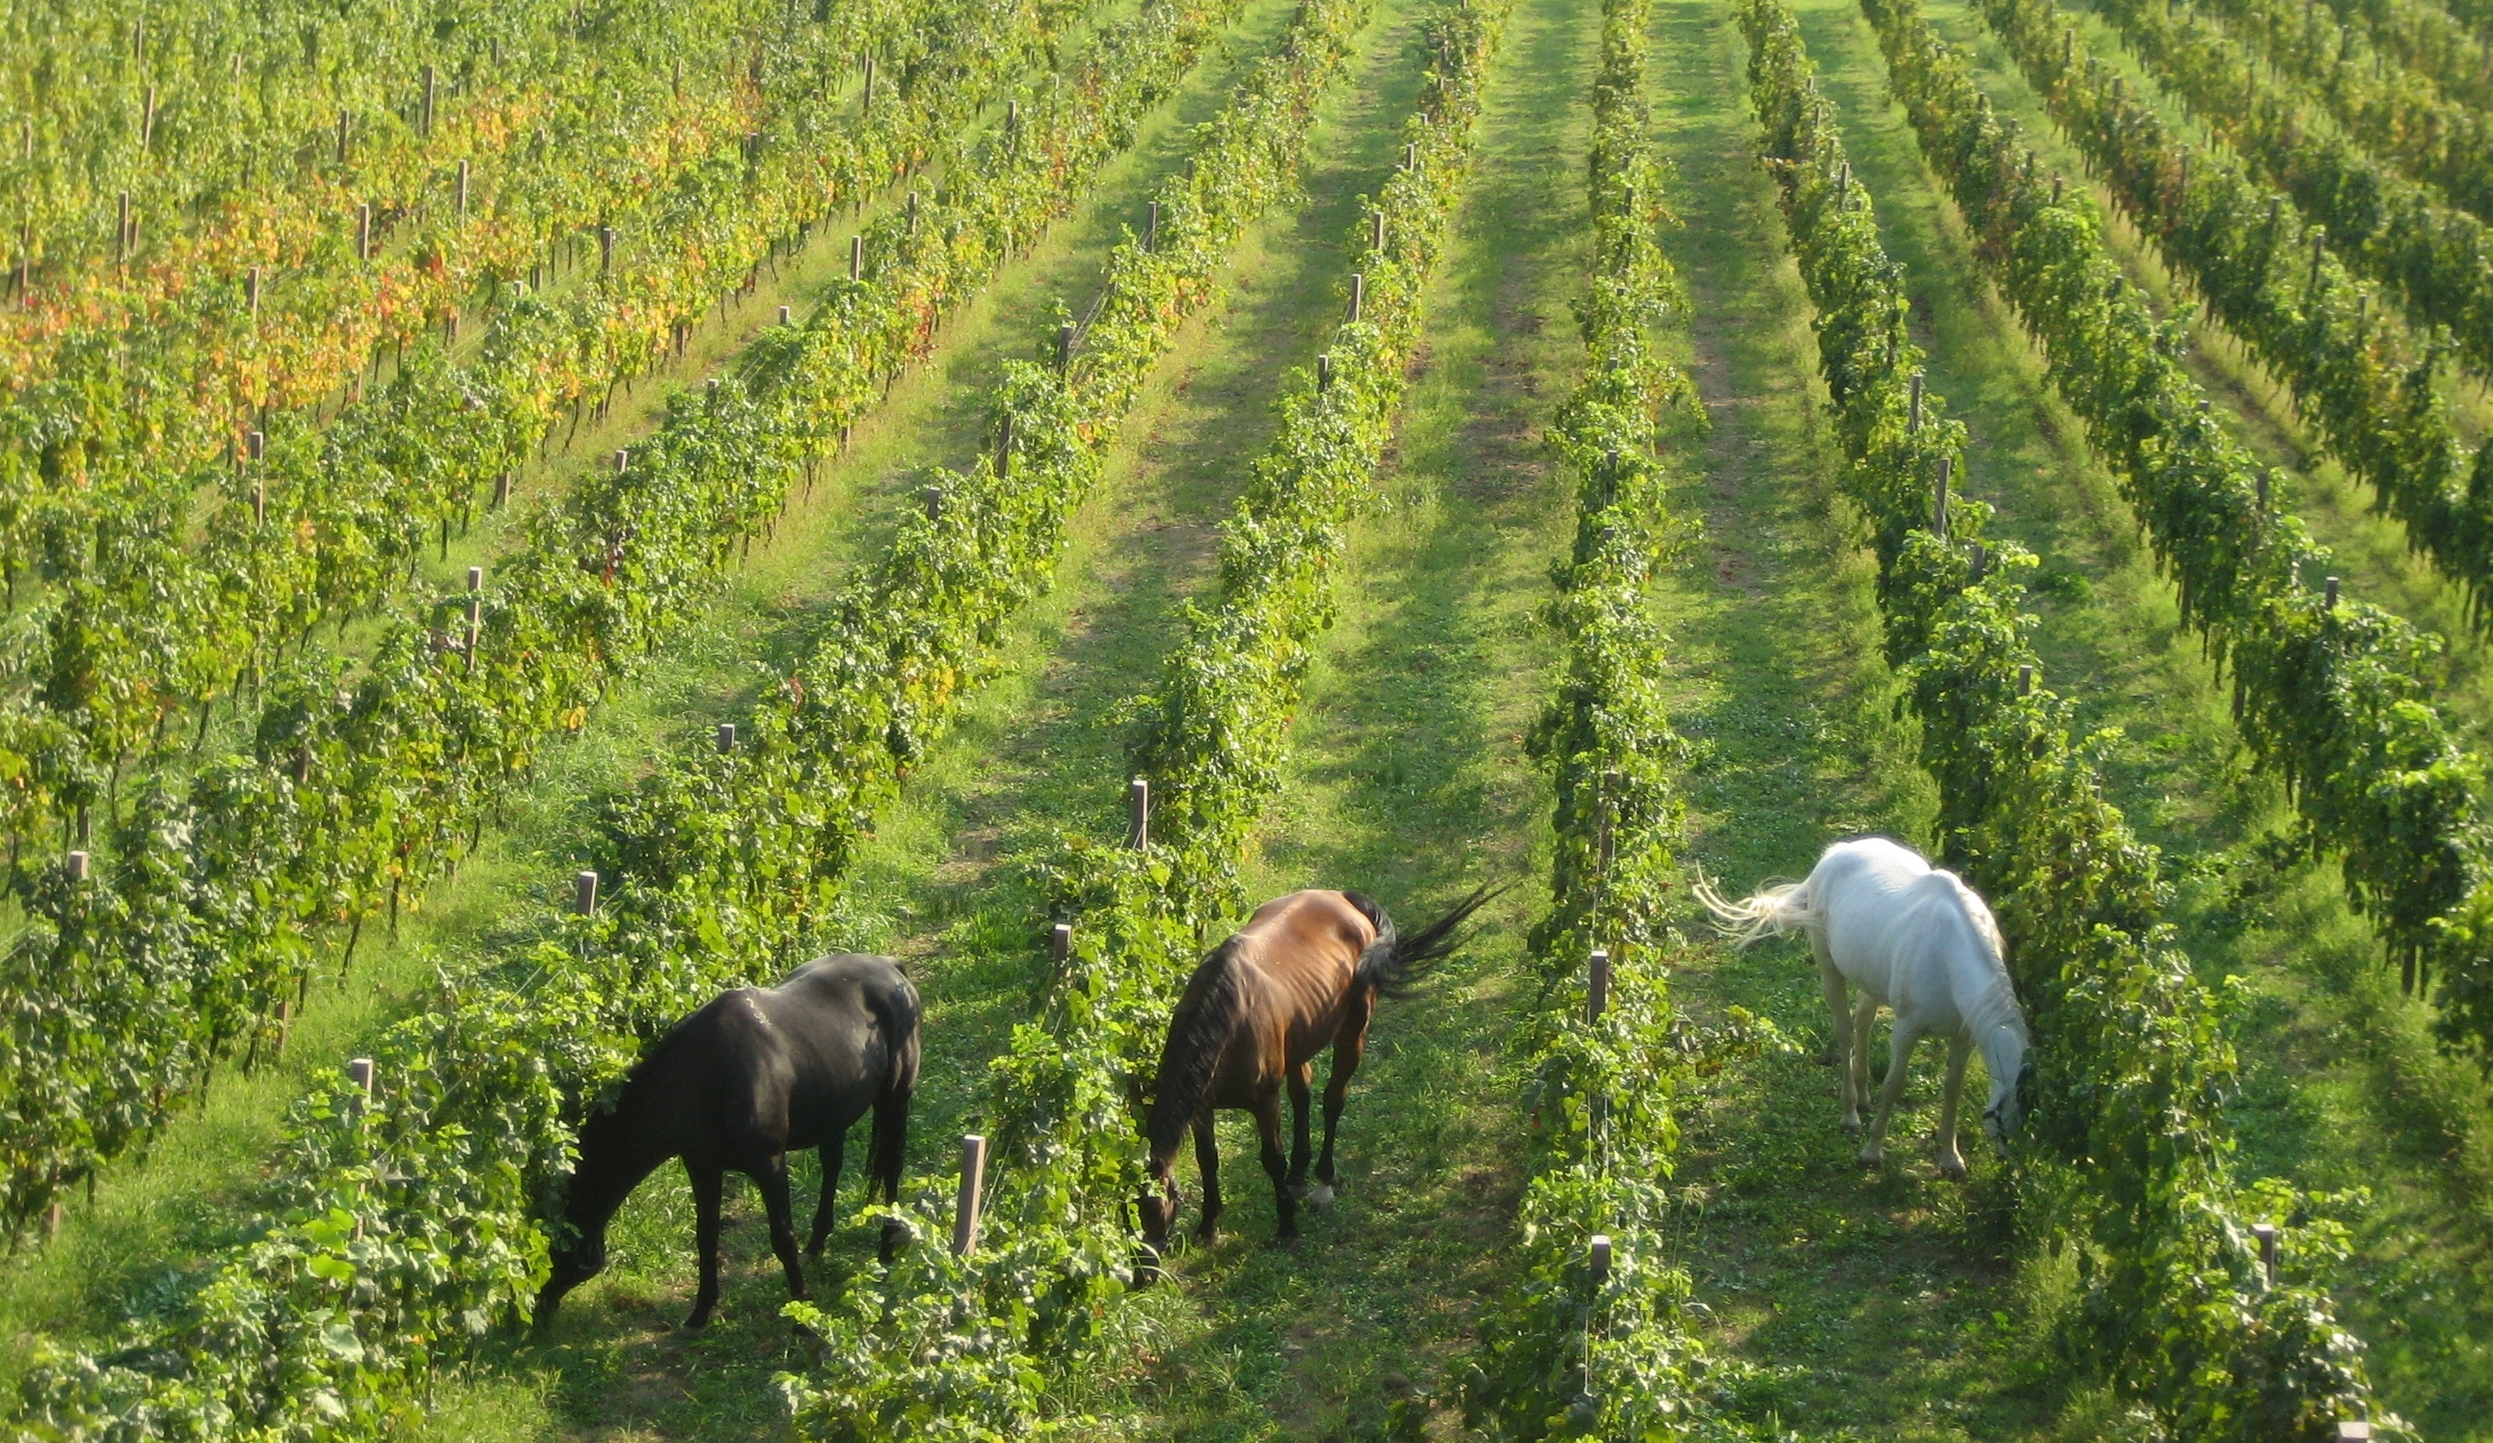 Herd the one about horses in the vineyard?